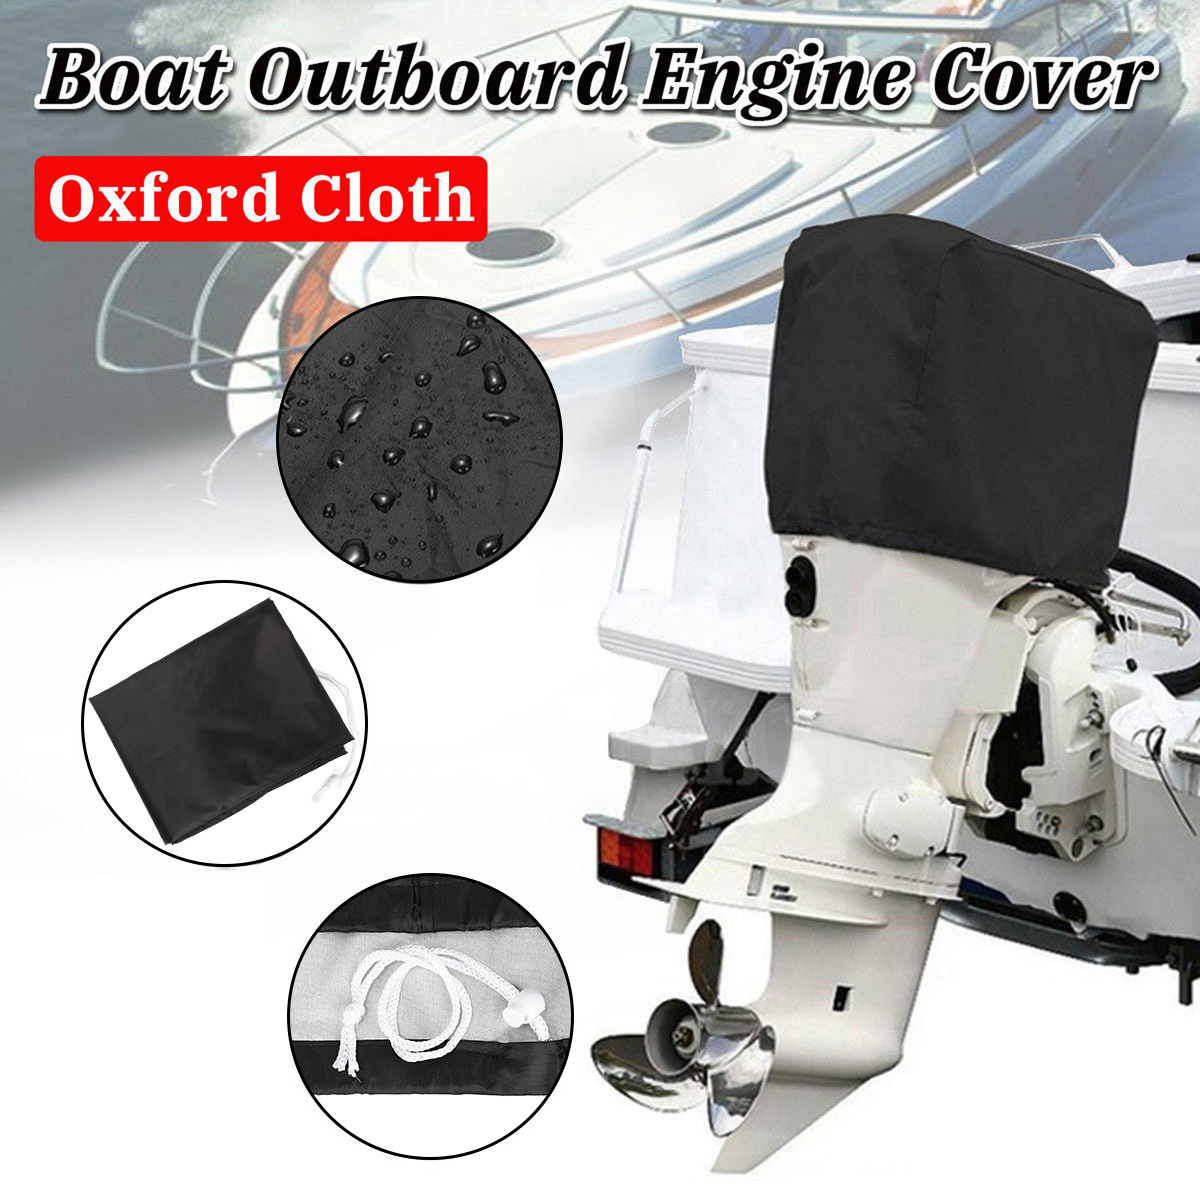 Waterproof Vented Outboard Motor Boat Engine Hood Cover 2-5 HP Size 1 Camo